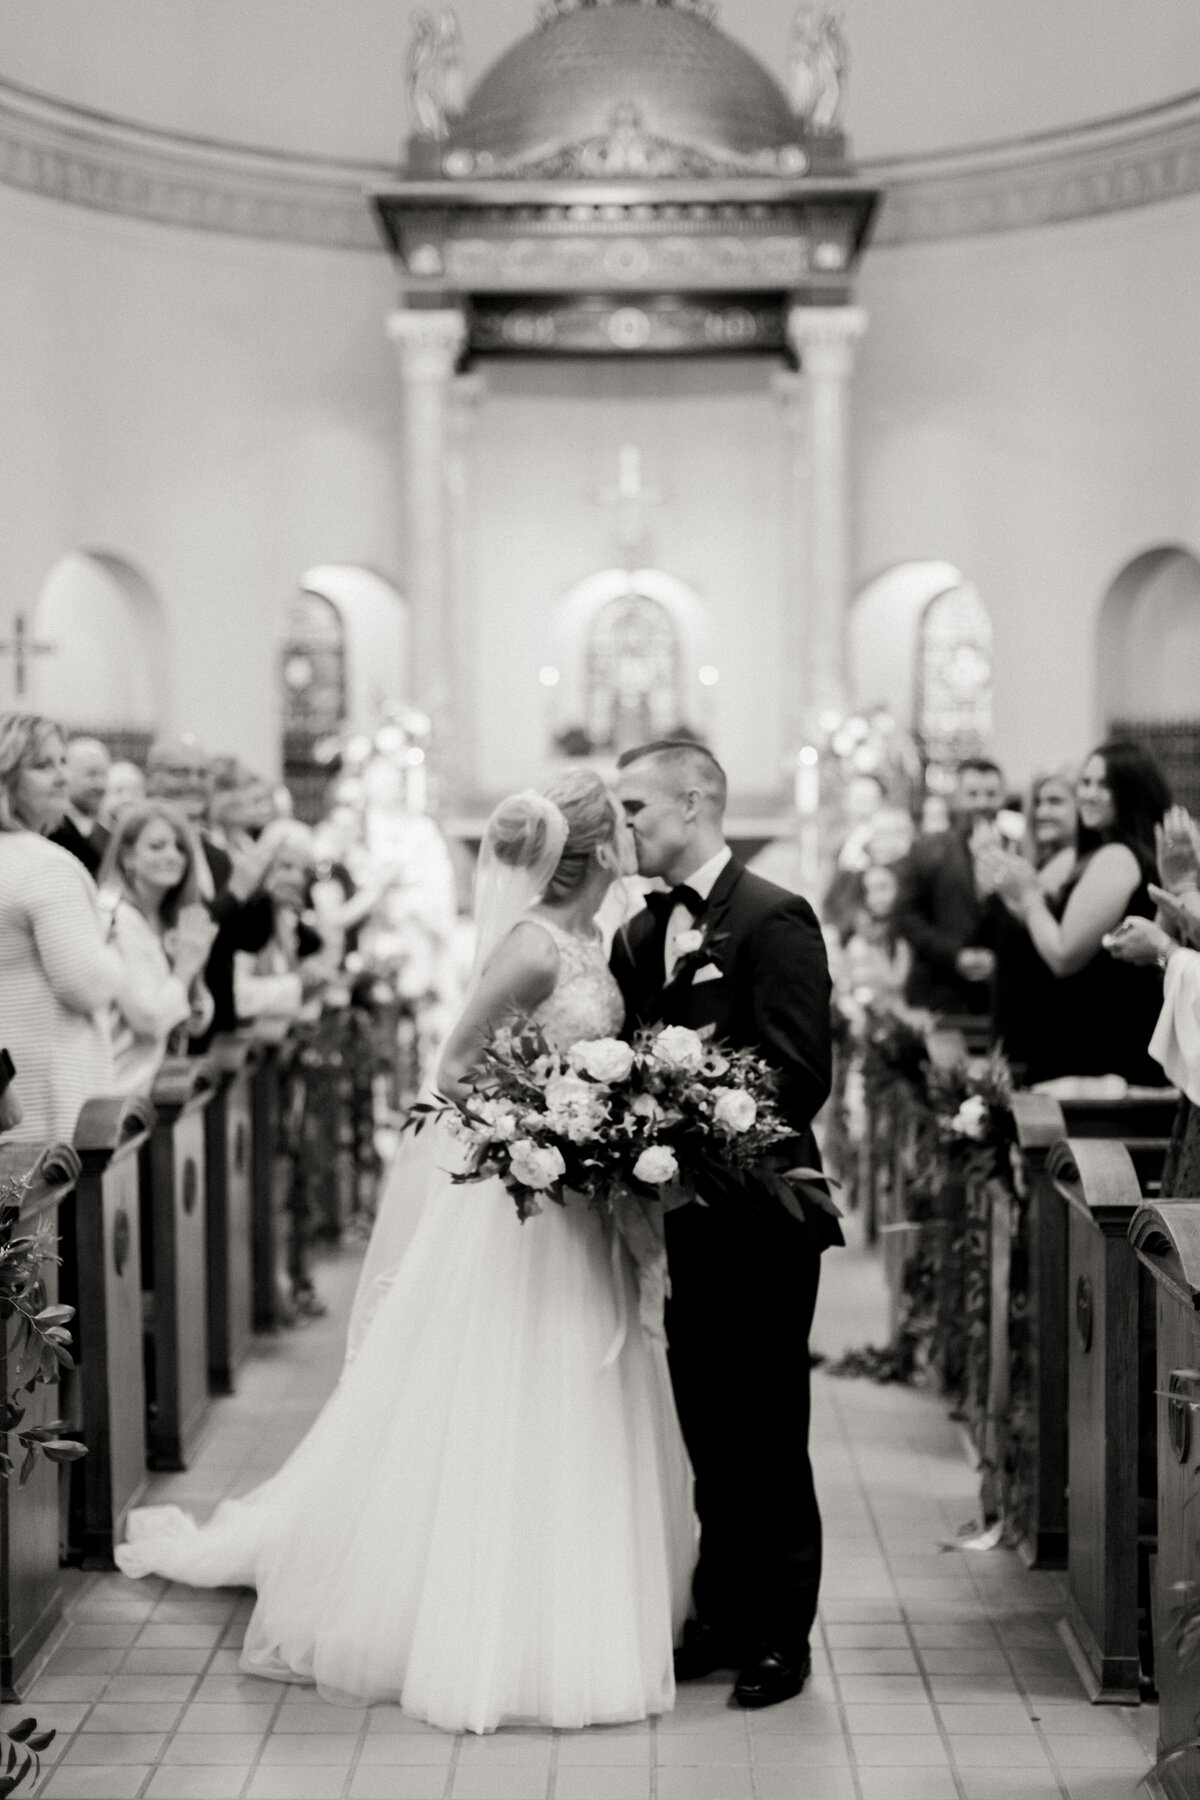 TiffaneyChildsPhotography-ChicagoWeddingPhotographer-Caitlin+Devin-MedinahCountryClubWedding-Ceremony-261